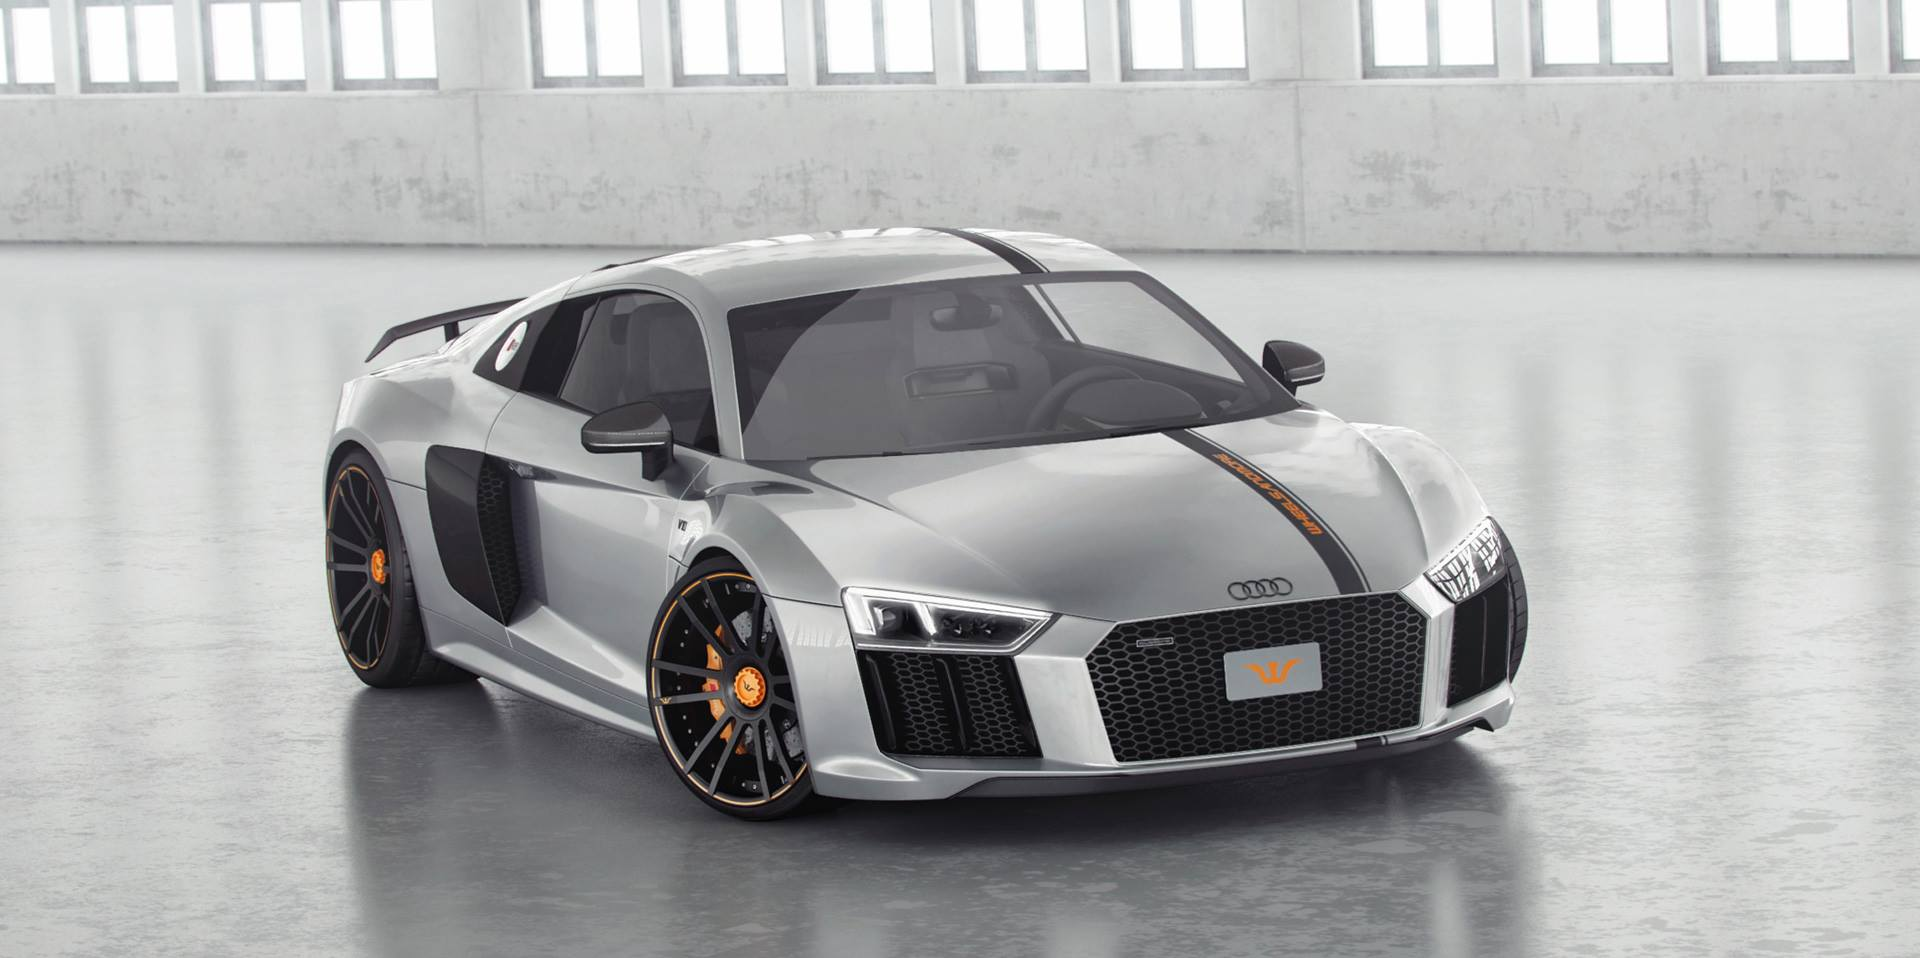 2017 Audi R8 by Wheelsandmore Has 850 HP and Looks Decent - autoevolution